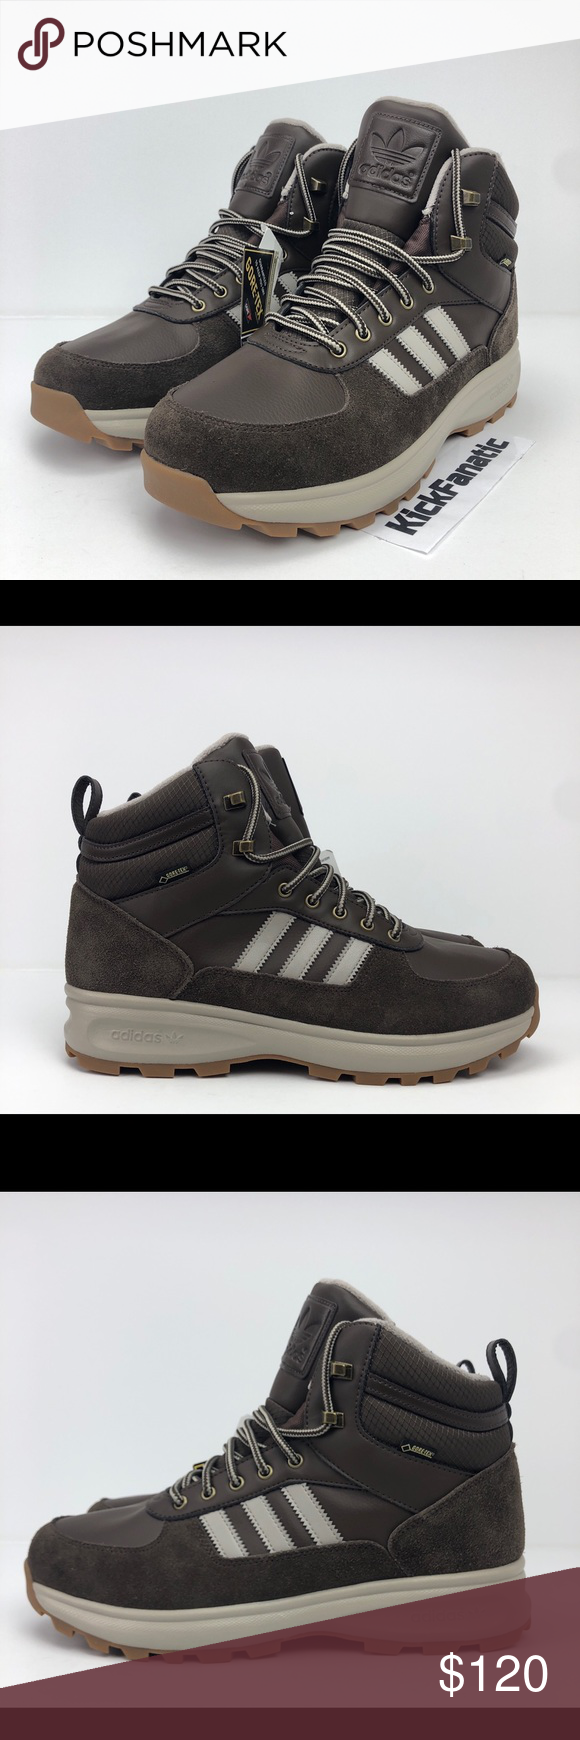 Adidas Chasker Boot Gore Tex GTX Brown Boots Adidas Chasker